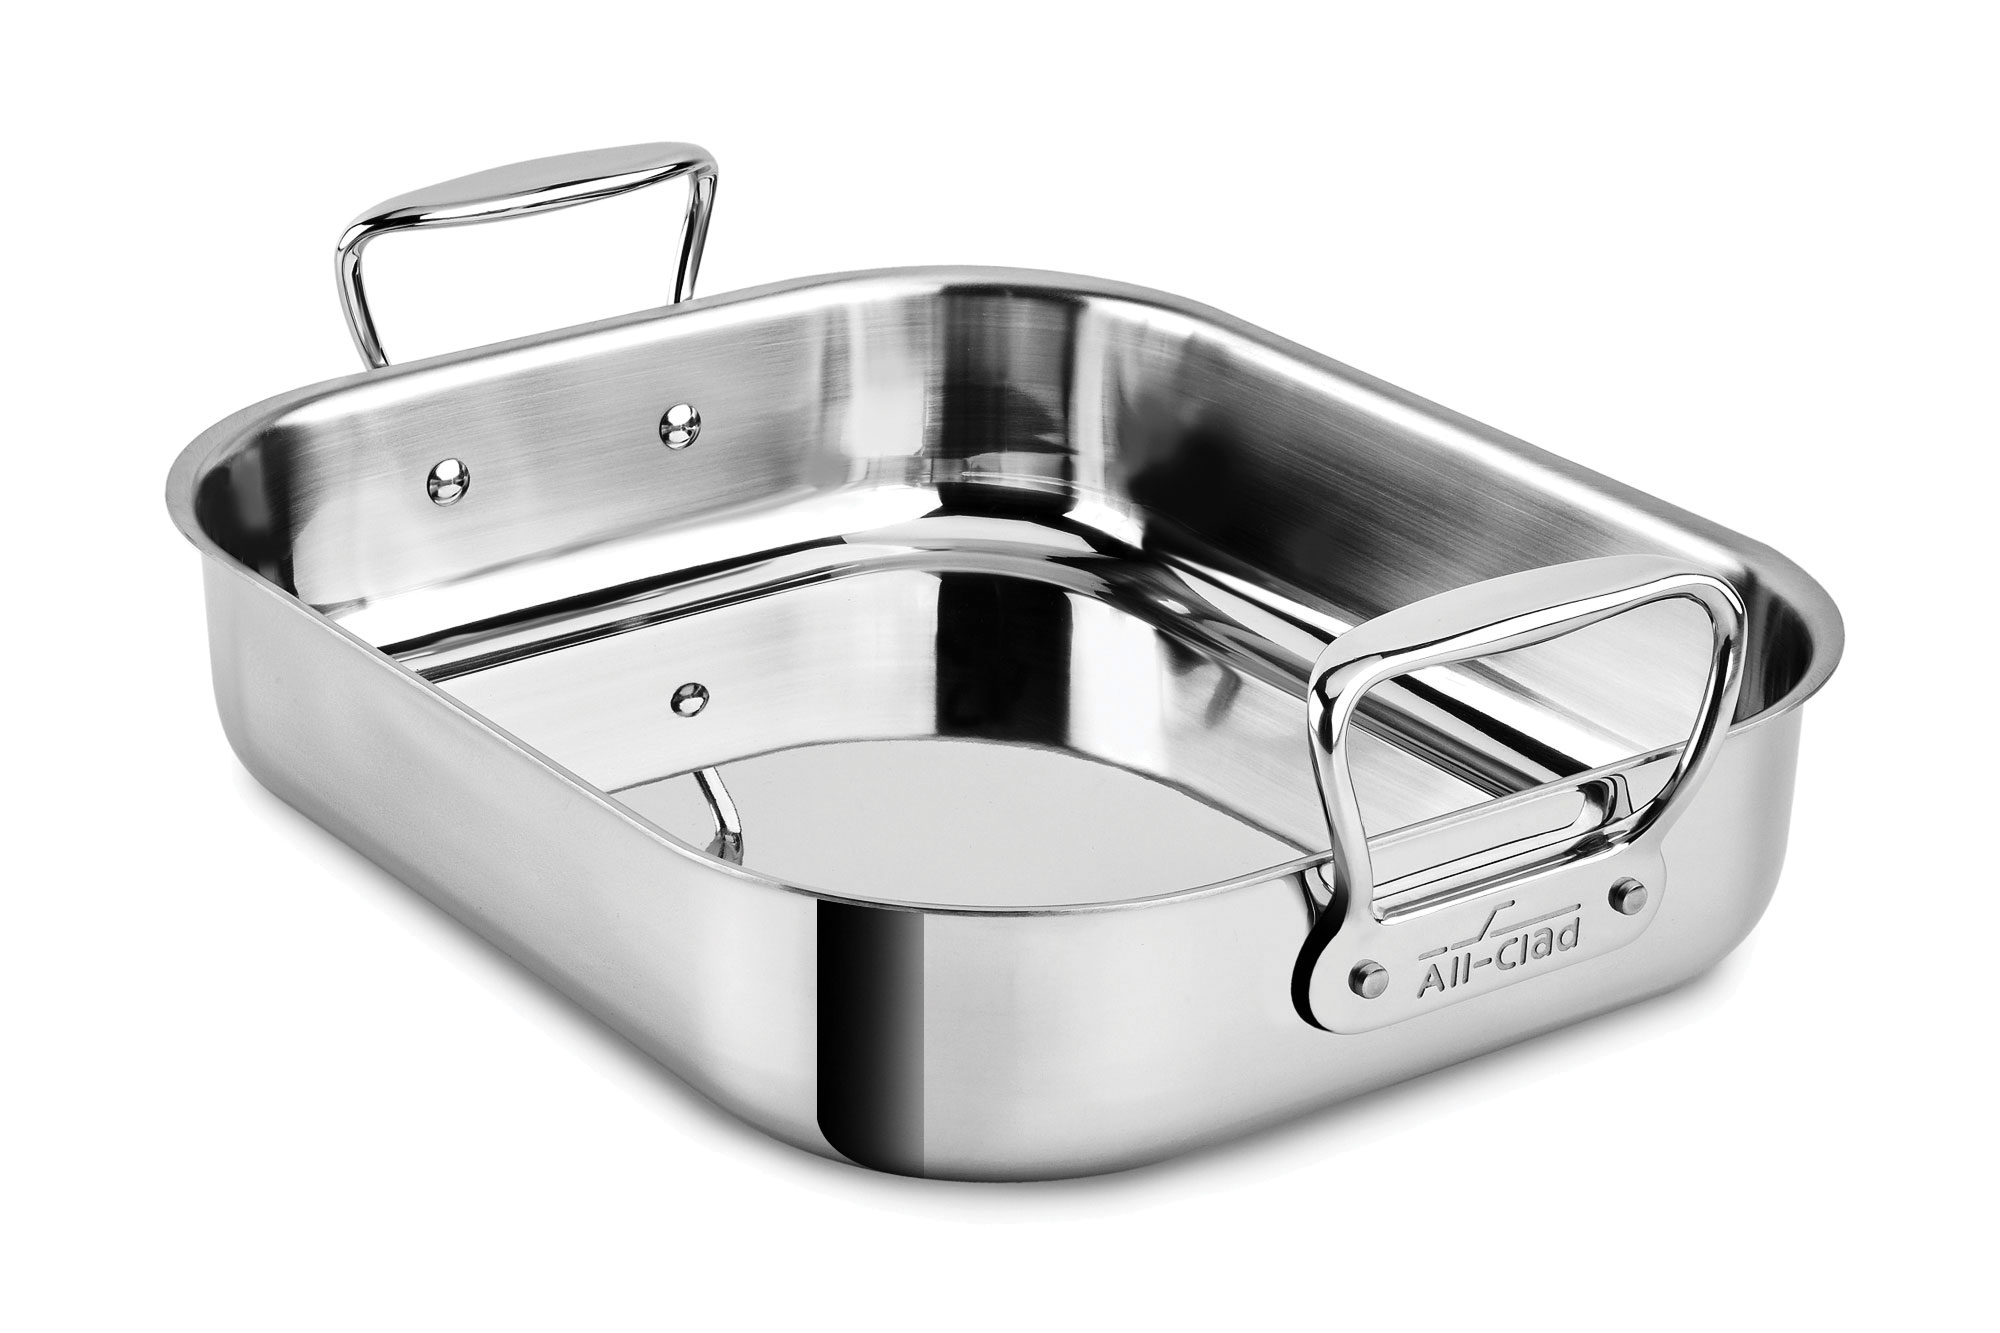 All Clad Roasting Pan With Rack 14x11 Quot Cutlery And More